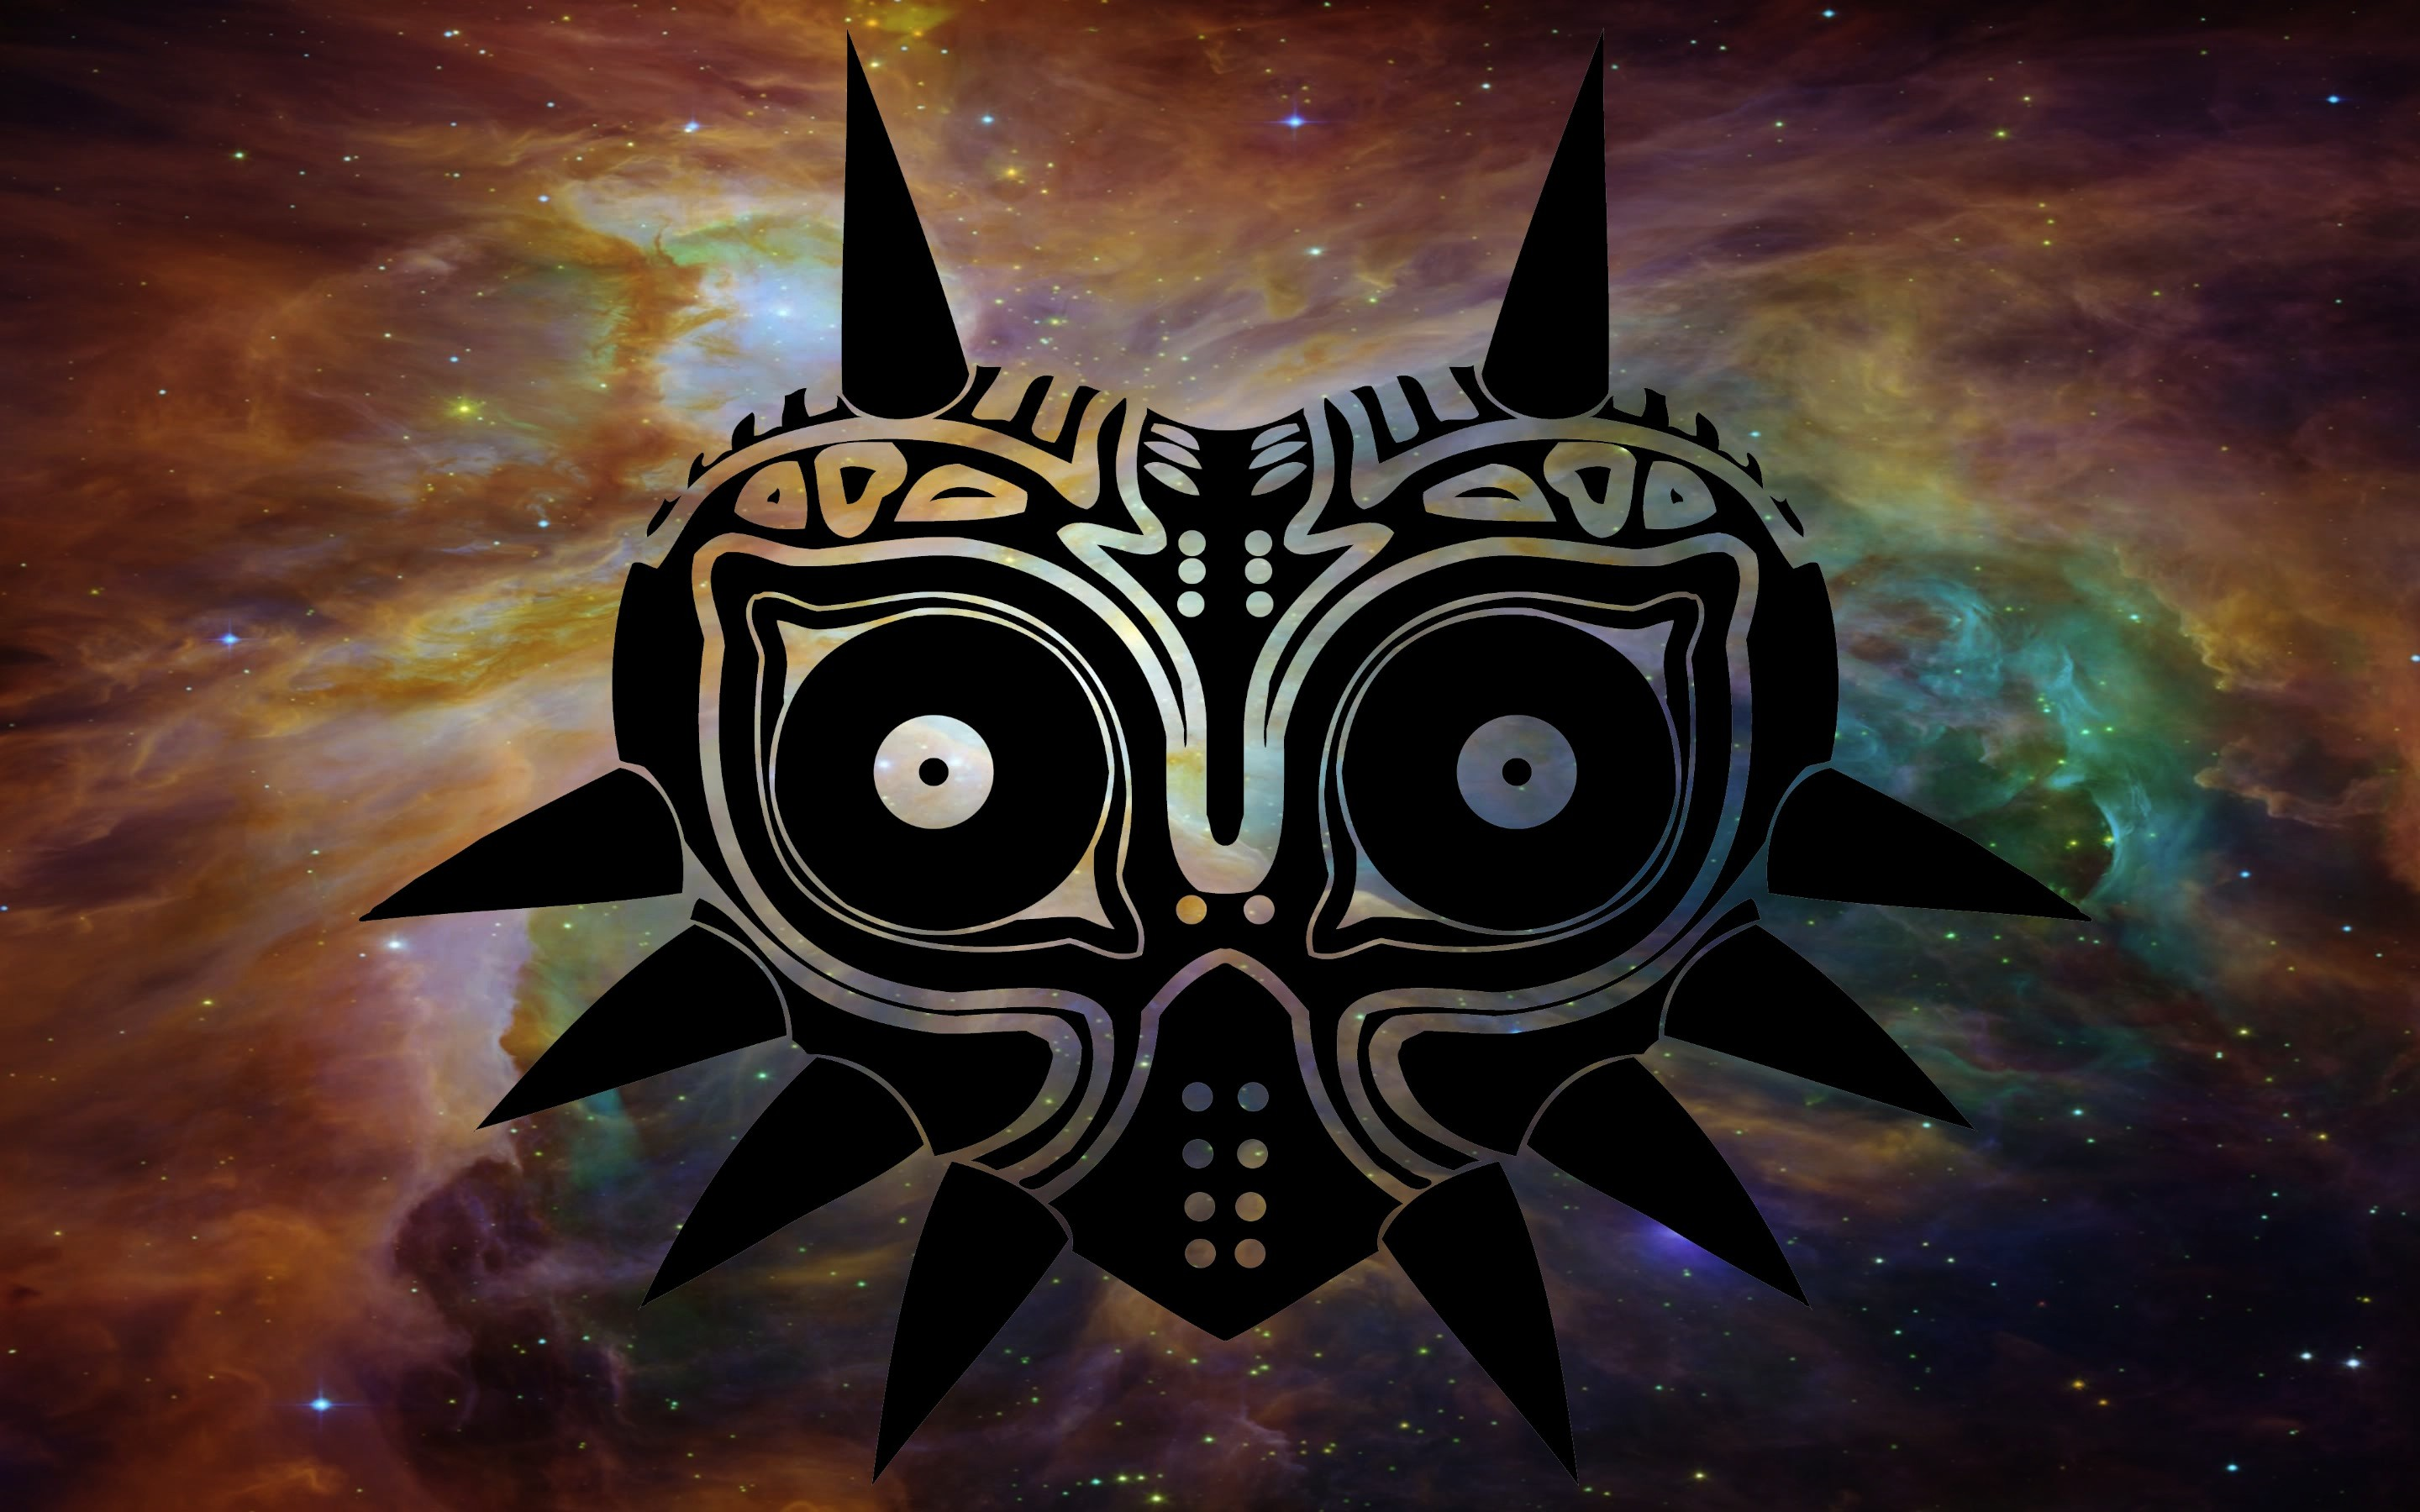 Here is a cool Majora's Mask wallpaper I made …